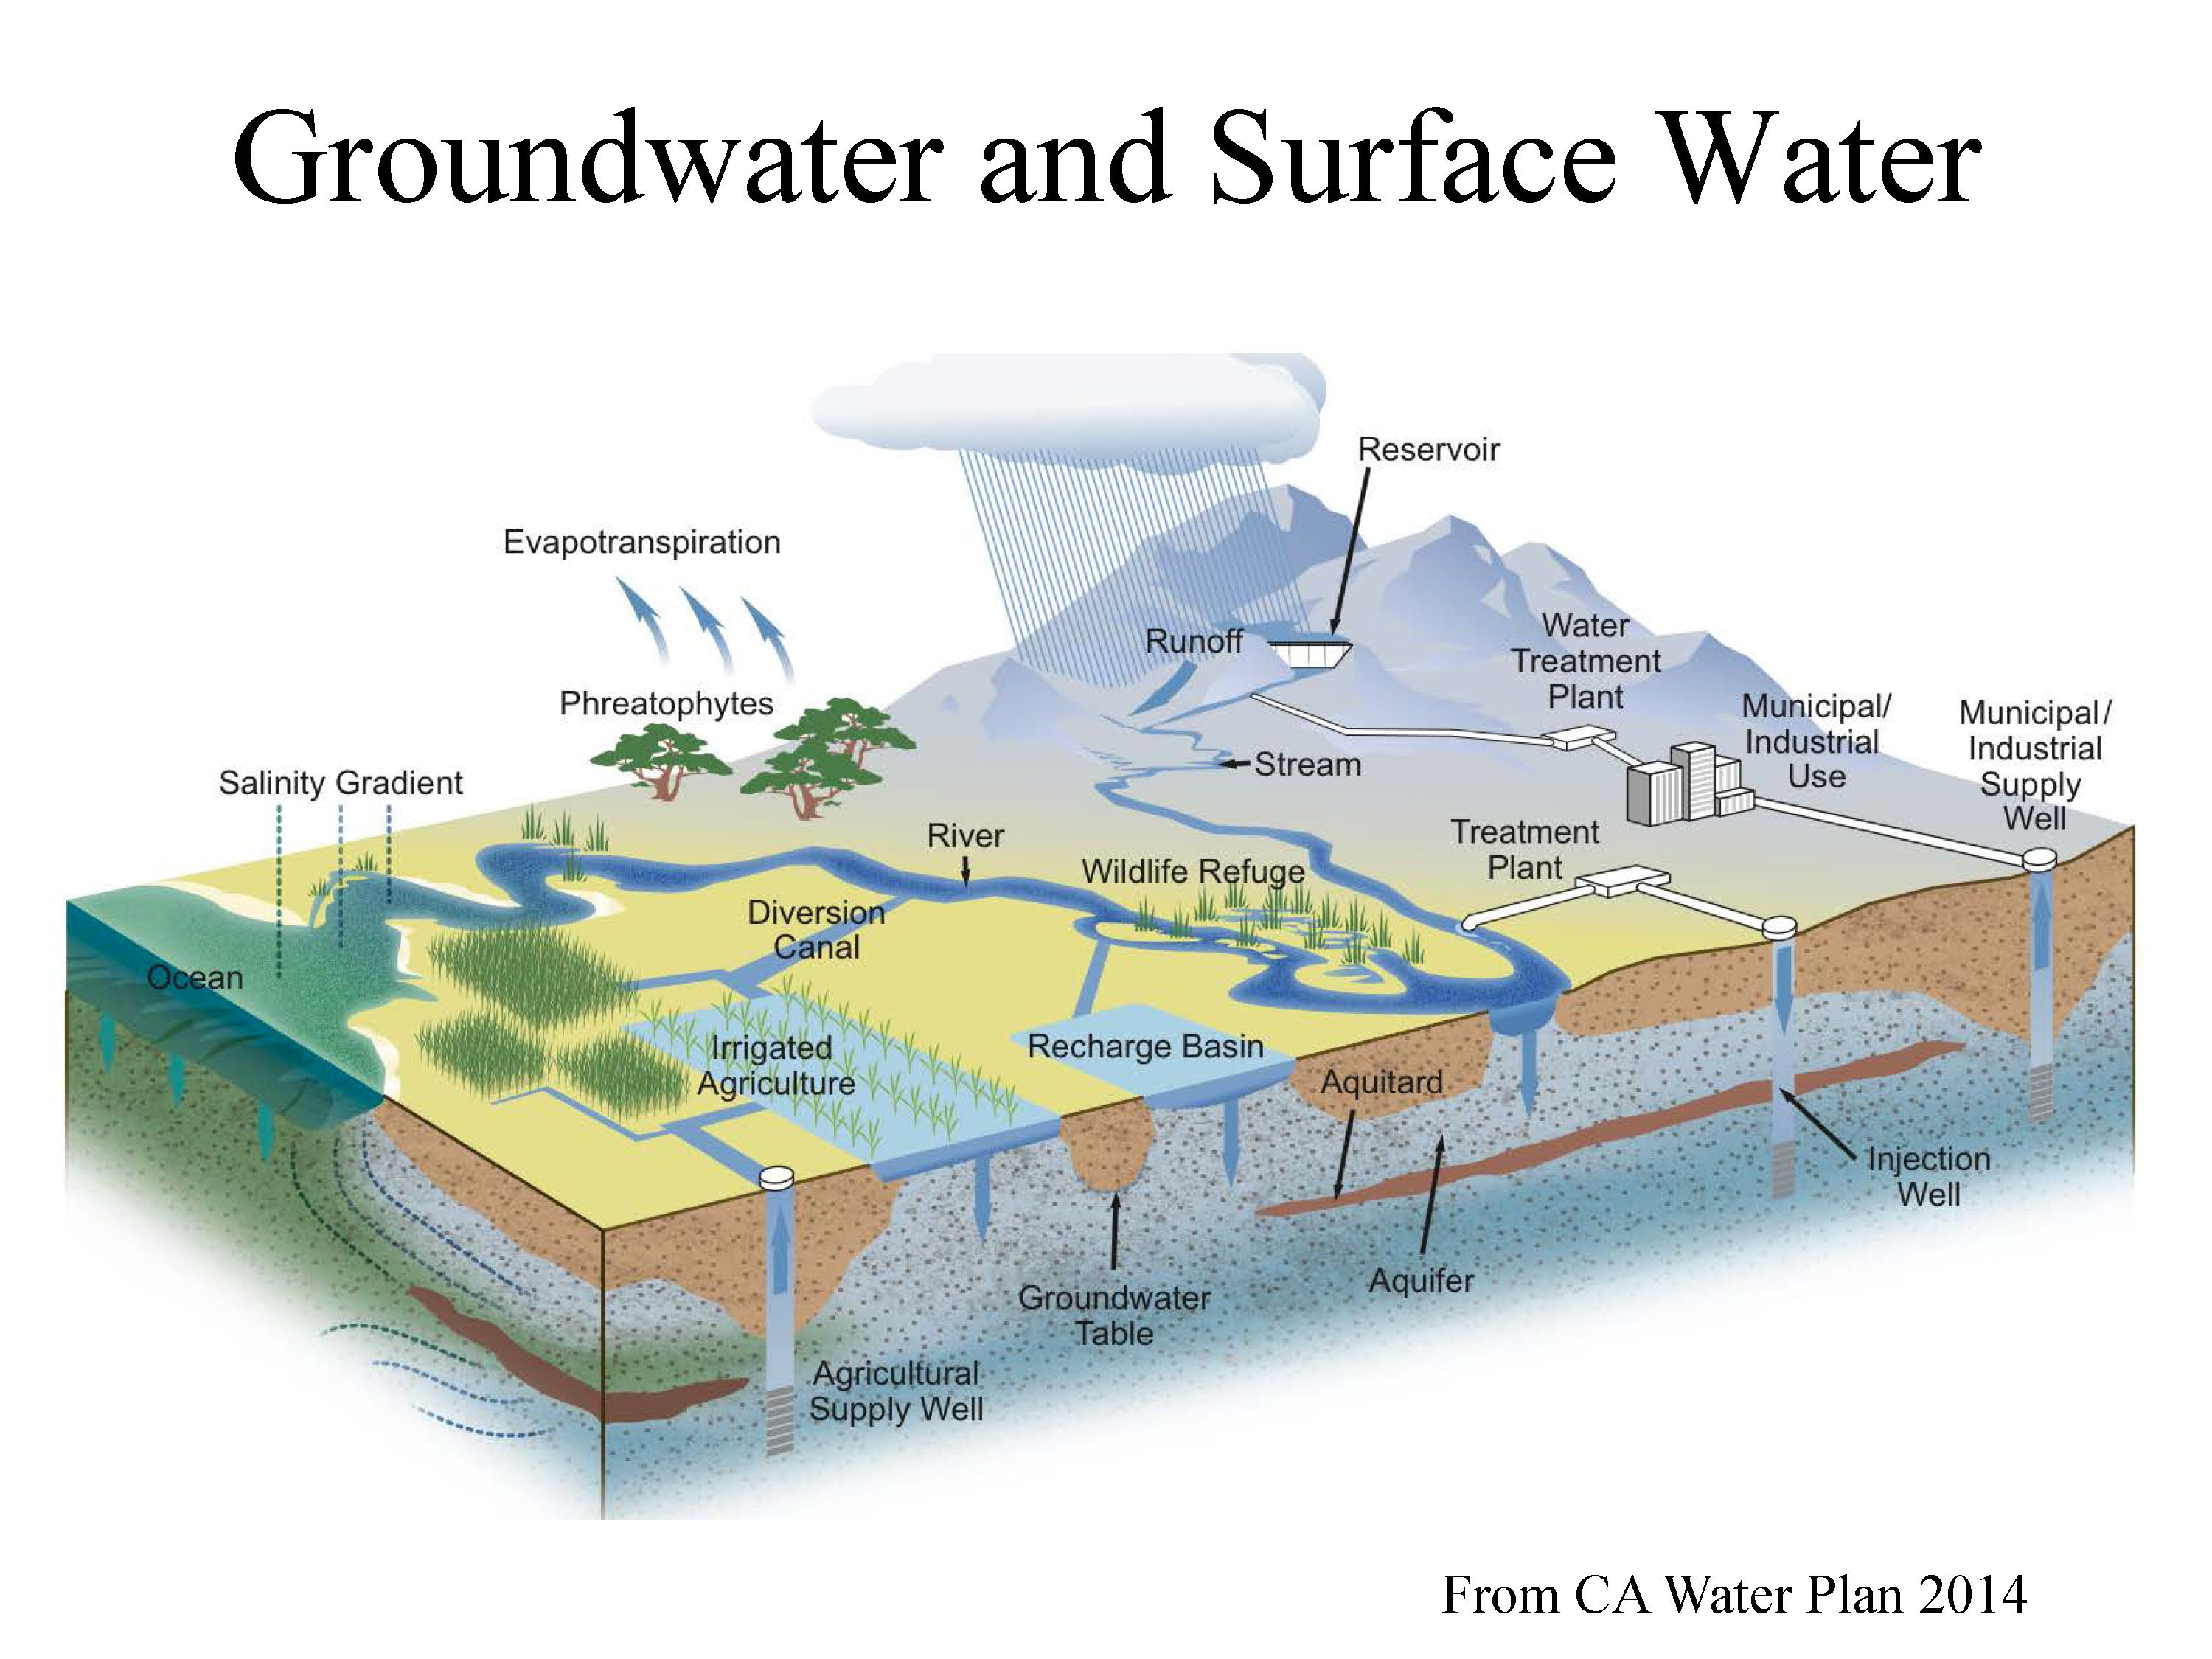 groundwater problems and prospects, part 1: an overview of